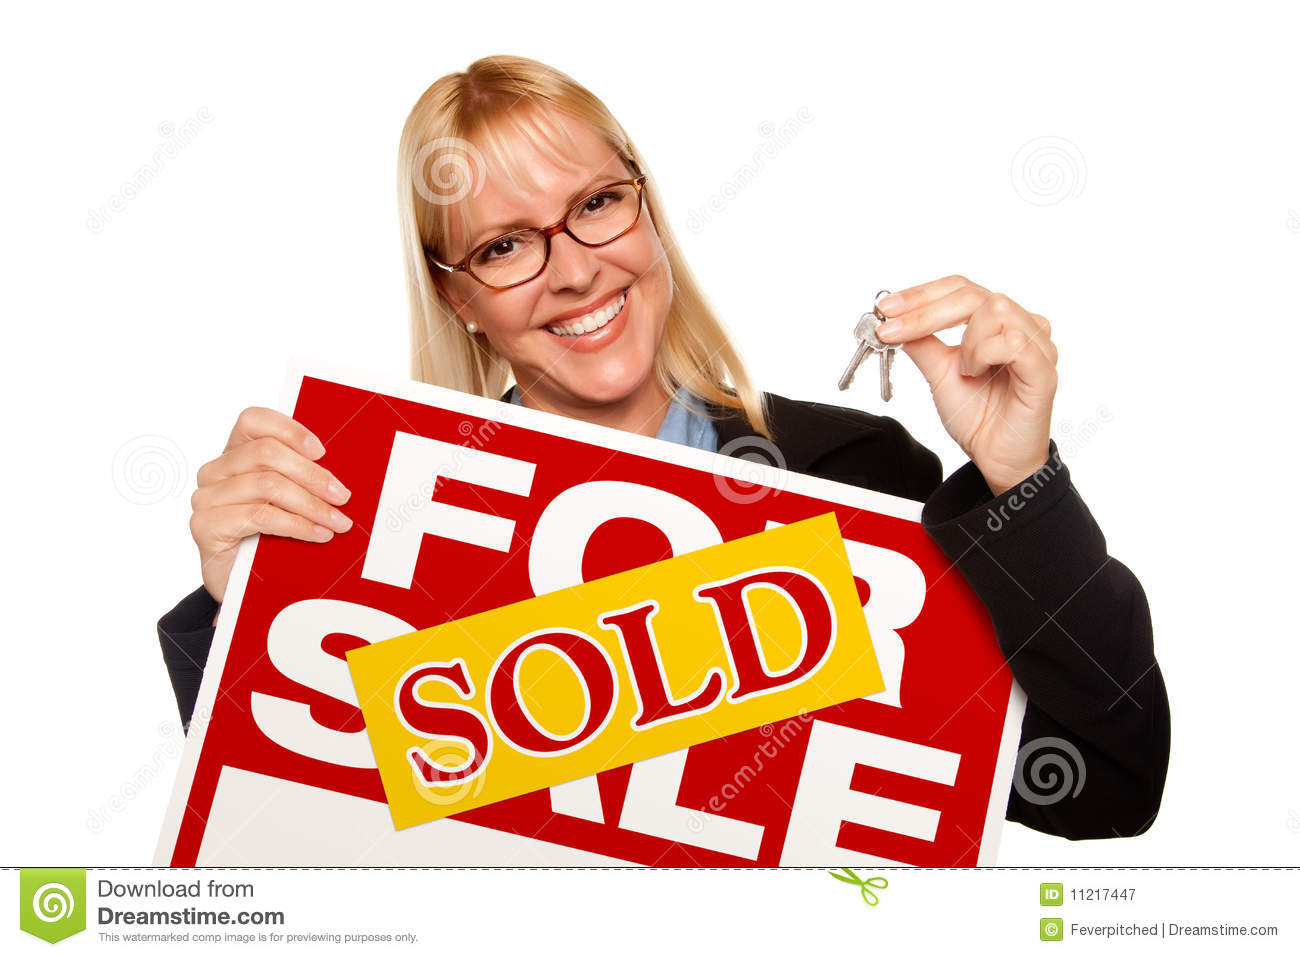 For Sale Sold Sign: Blonde Holding Keys & Sold For Sale Sign Stock Image